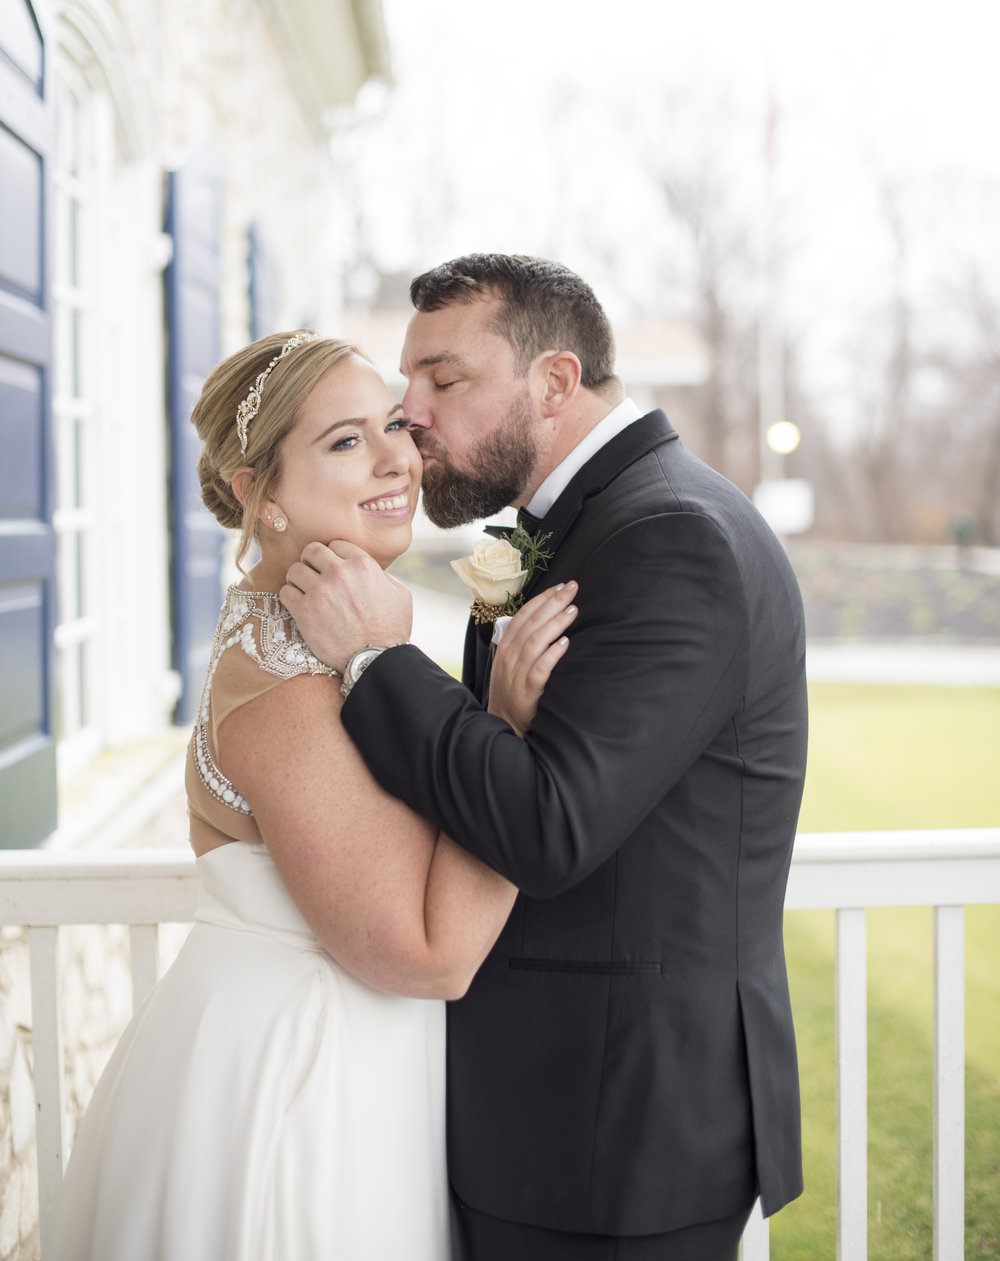 Wedding at Downingtown Country Club, PA